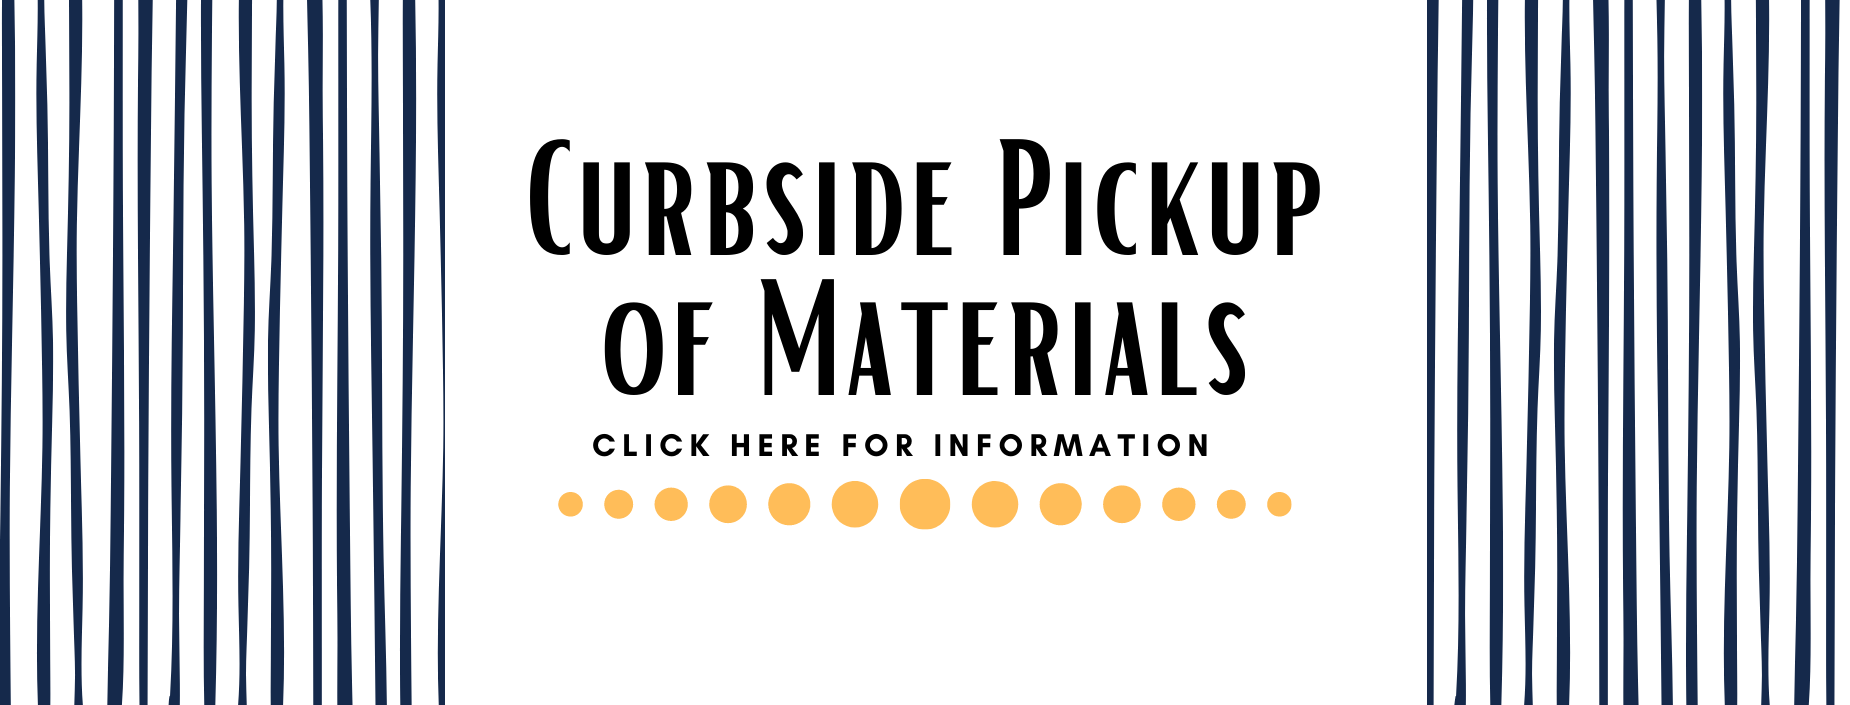 Curbside Pickup of Materials Banner